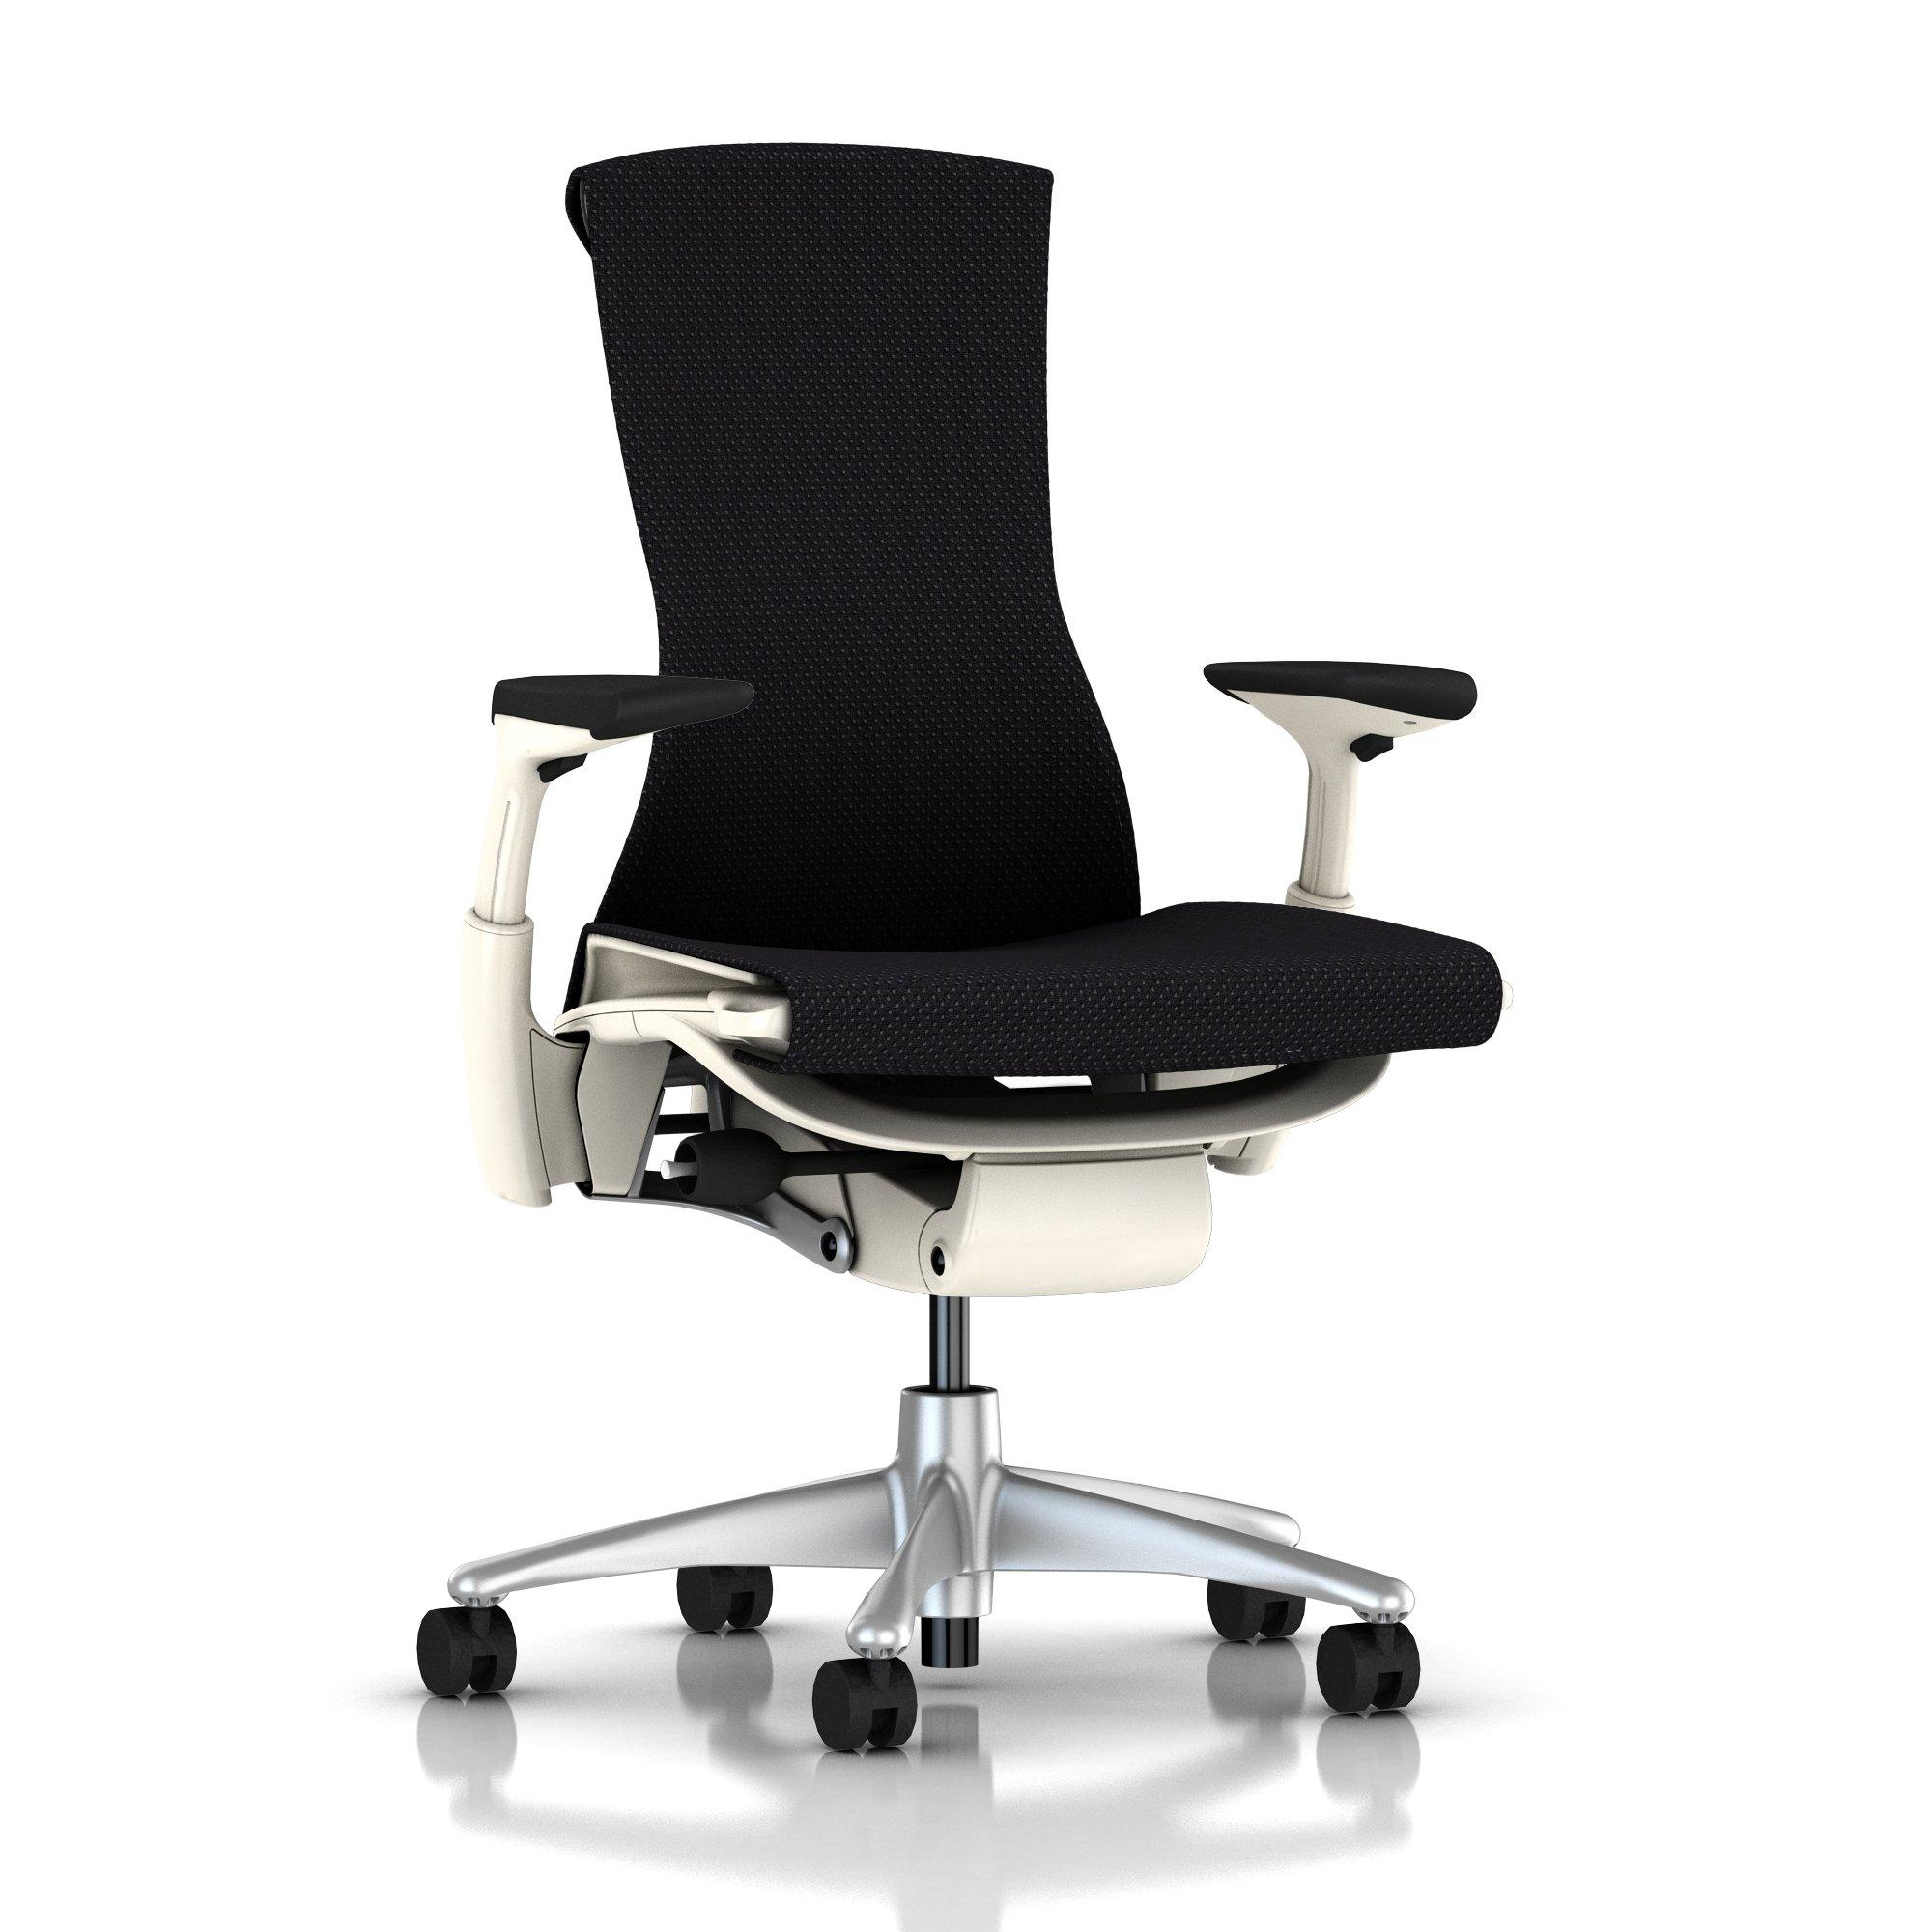 Titanium Base - Adjustable Arms - White Frame - 2.5-inch Standard Carpet Casters - Black Balance Fabric Seat and Back